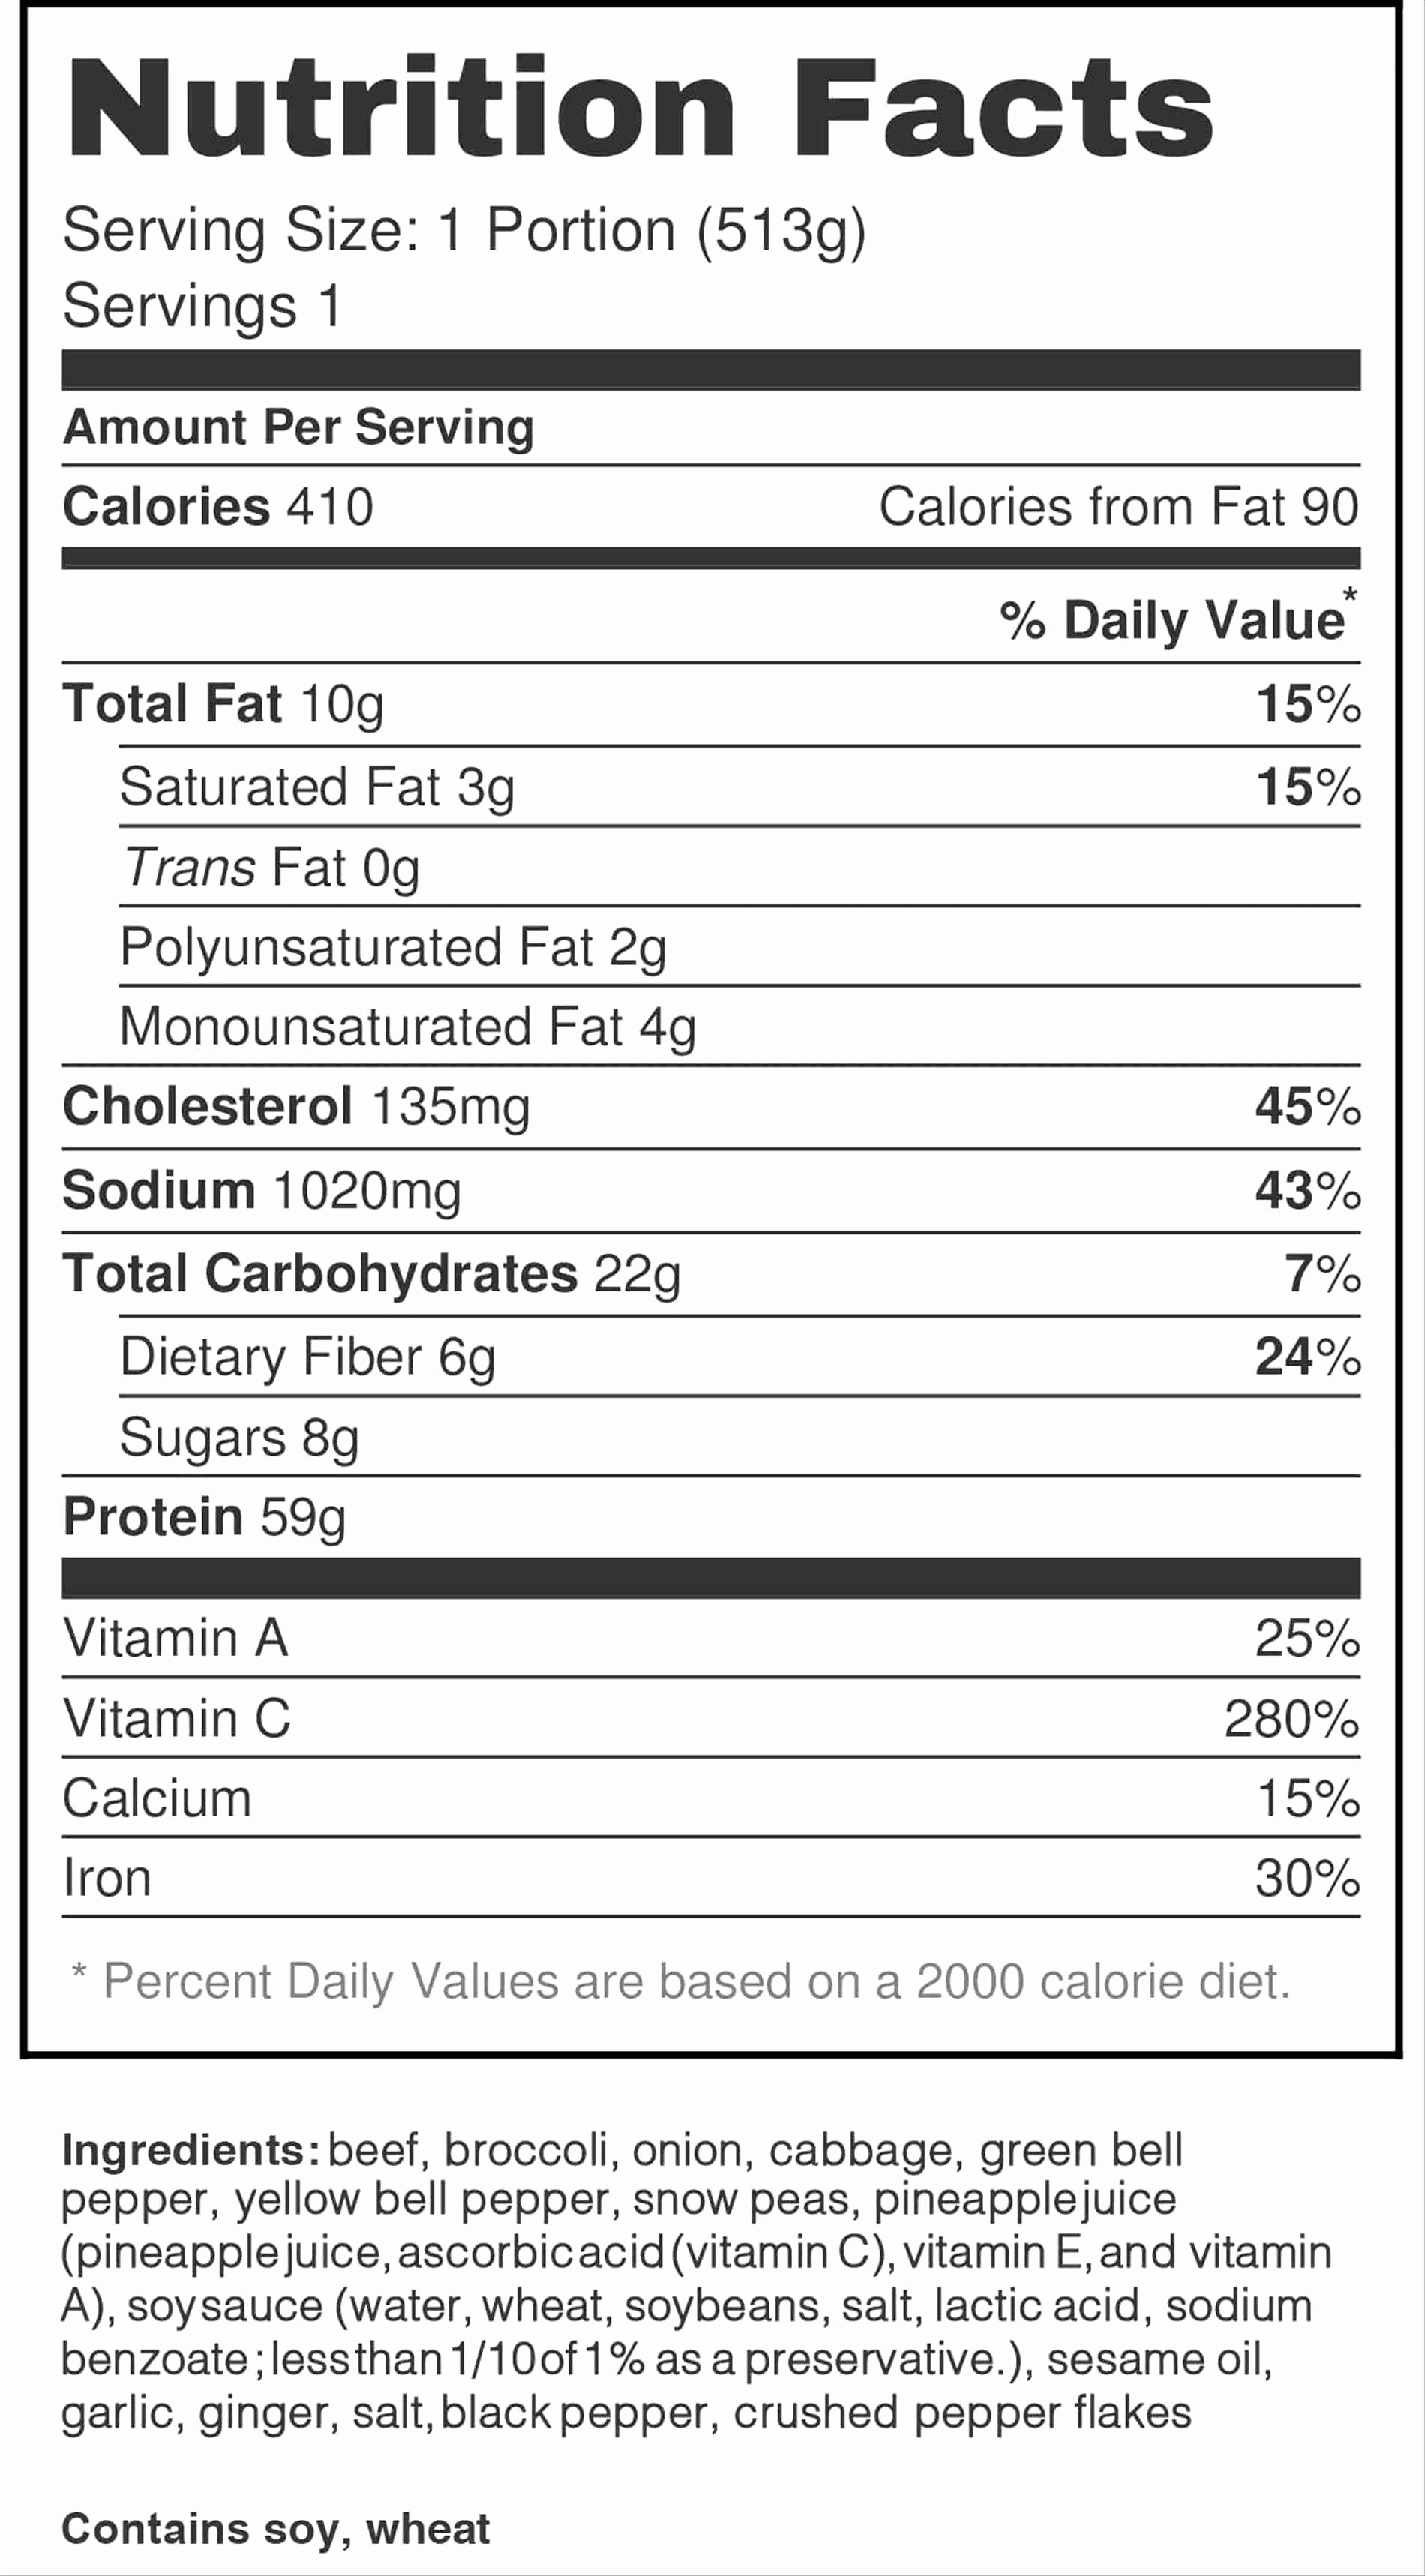 Nutrition Facts Template Excel Download Awesome Nutrition Label Template Excel Hola Klonec